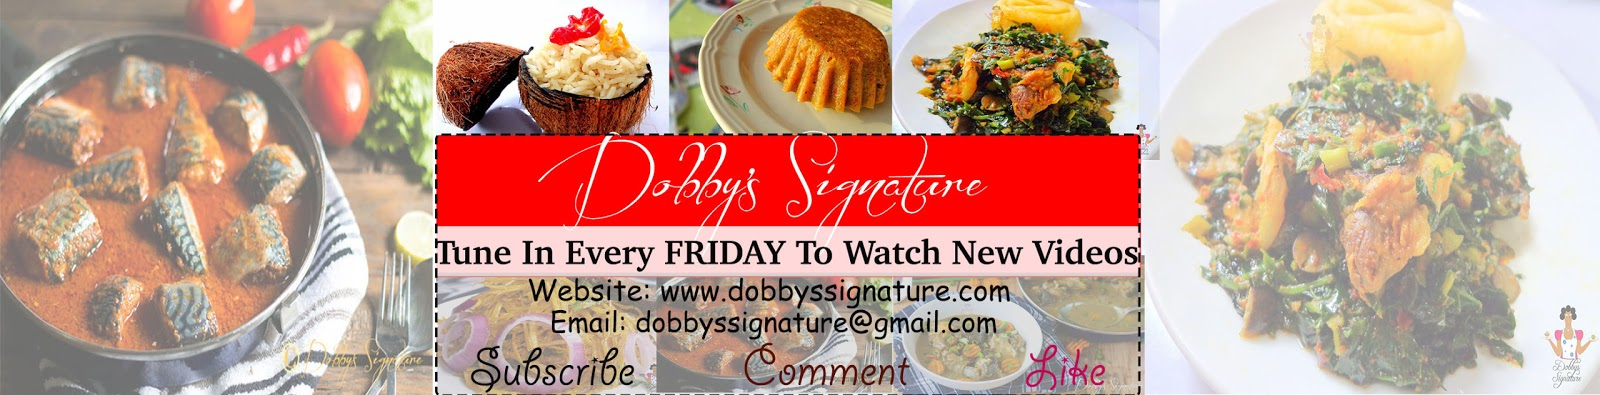 Dobbys signature nigerian food blog i nigerian food recipes i welcome to my video page here youd find new video uploads from my channel dobbys signature tv if you cant play the video on this site you can watch forumfinder Images